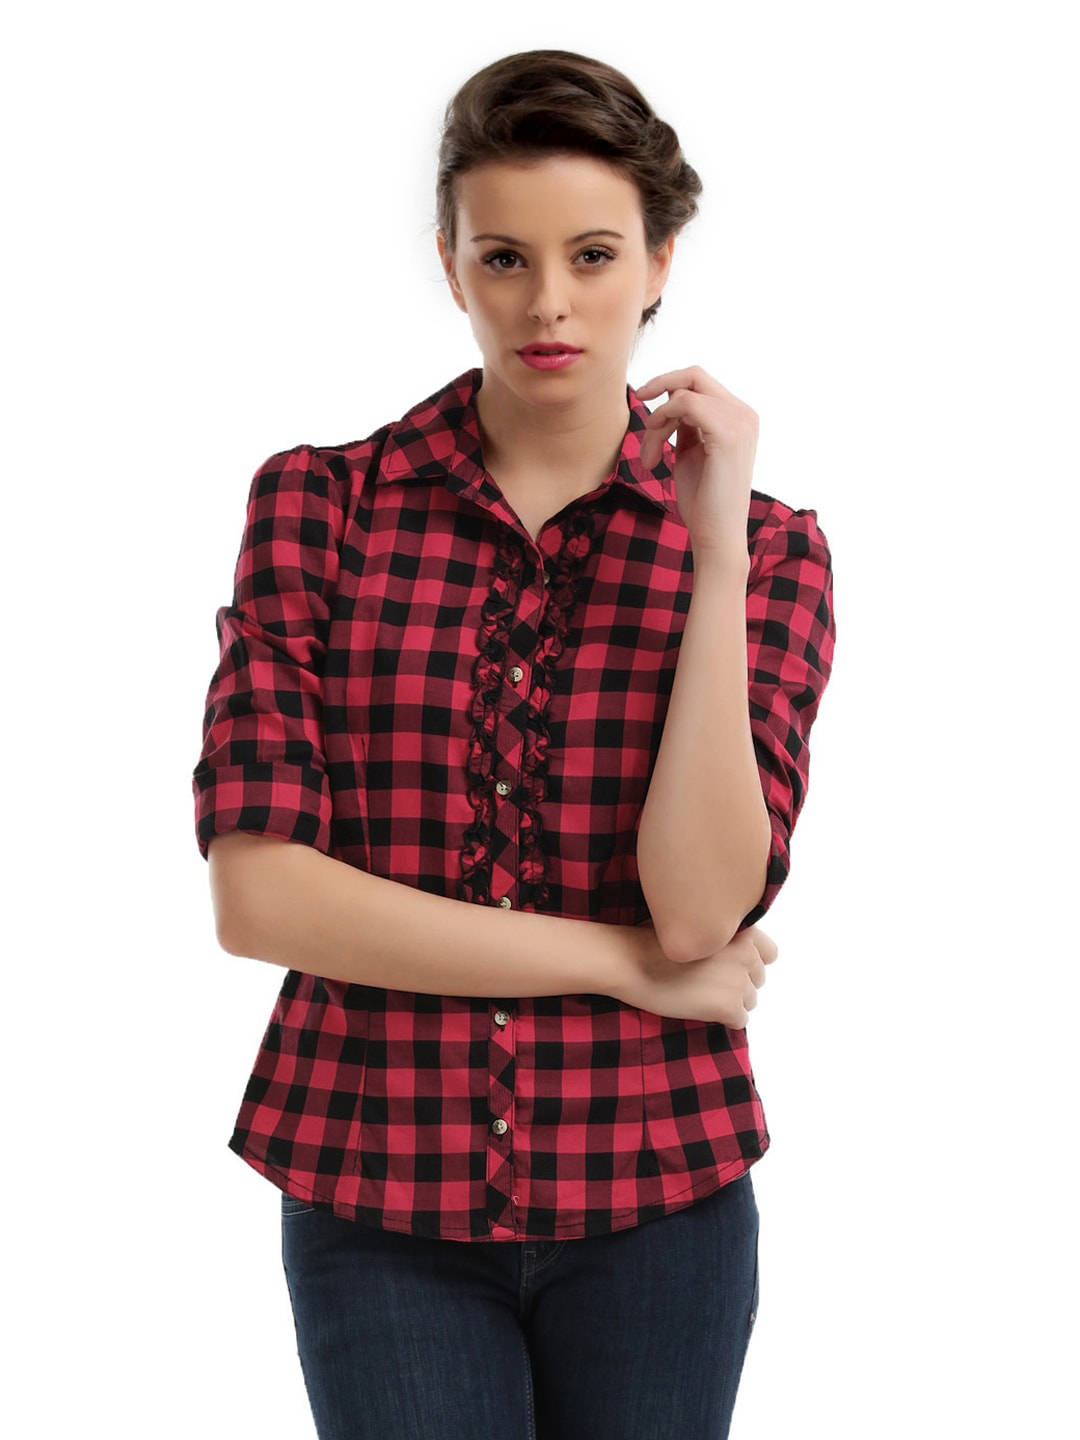 Red And Black Check Shirt Womens Artee Shirt